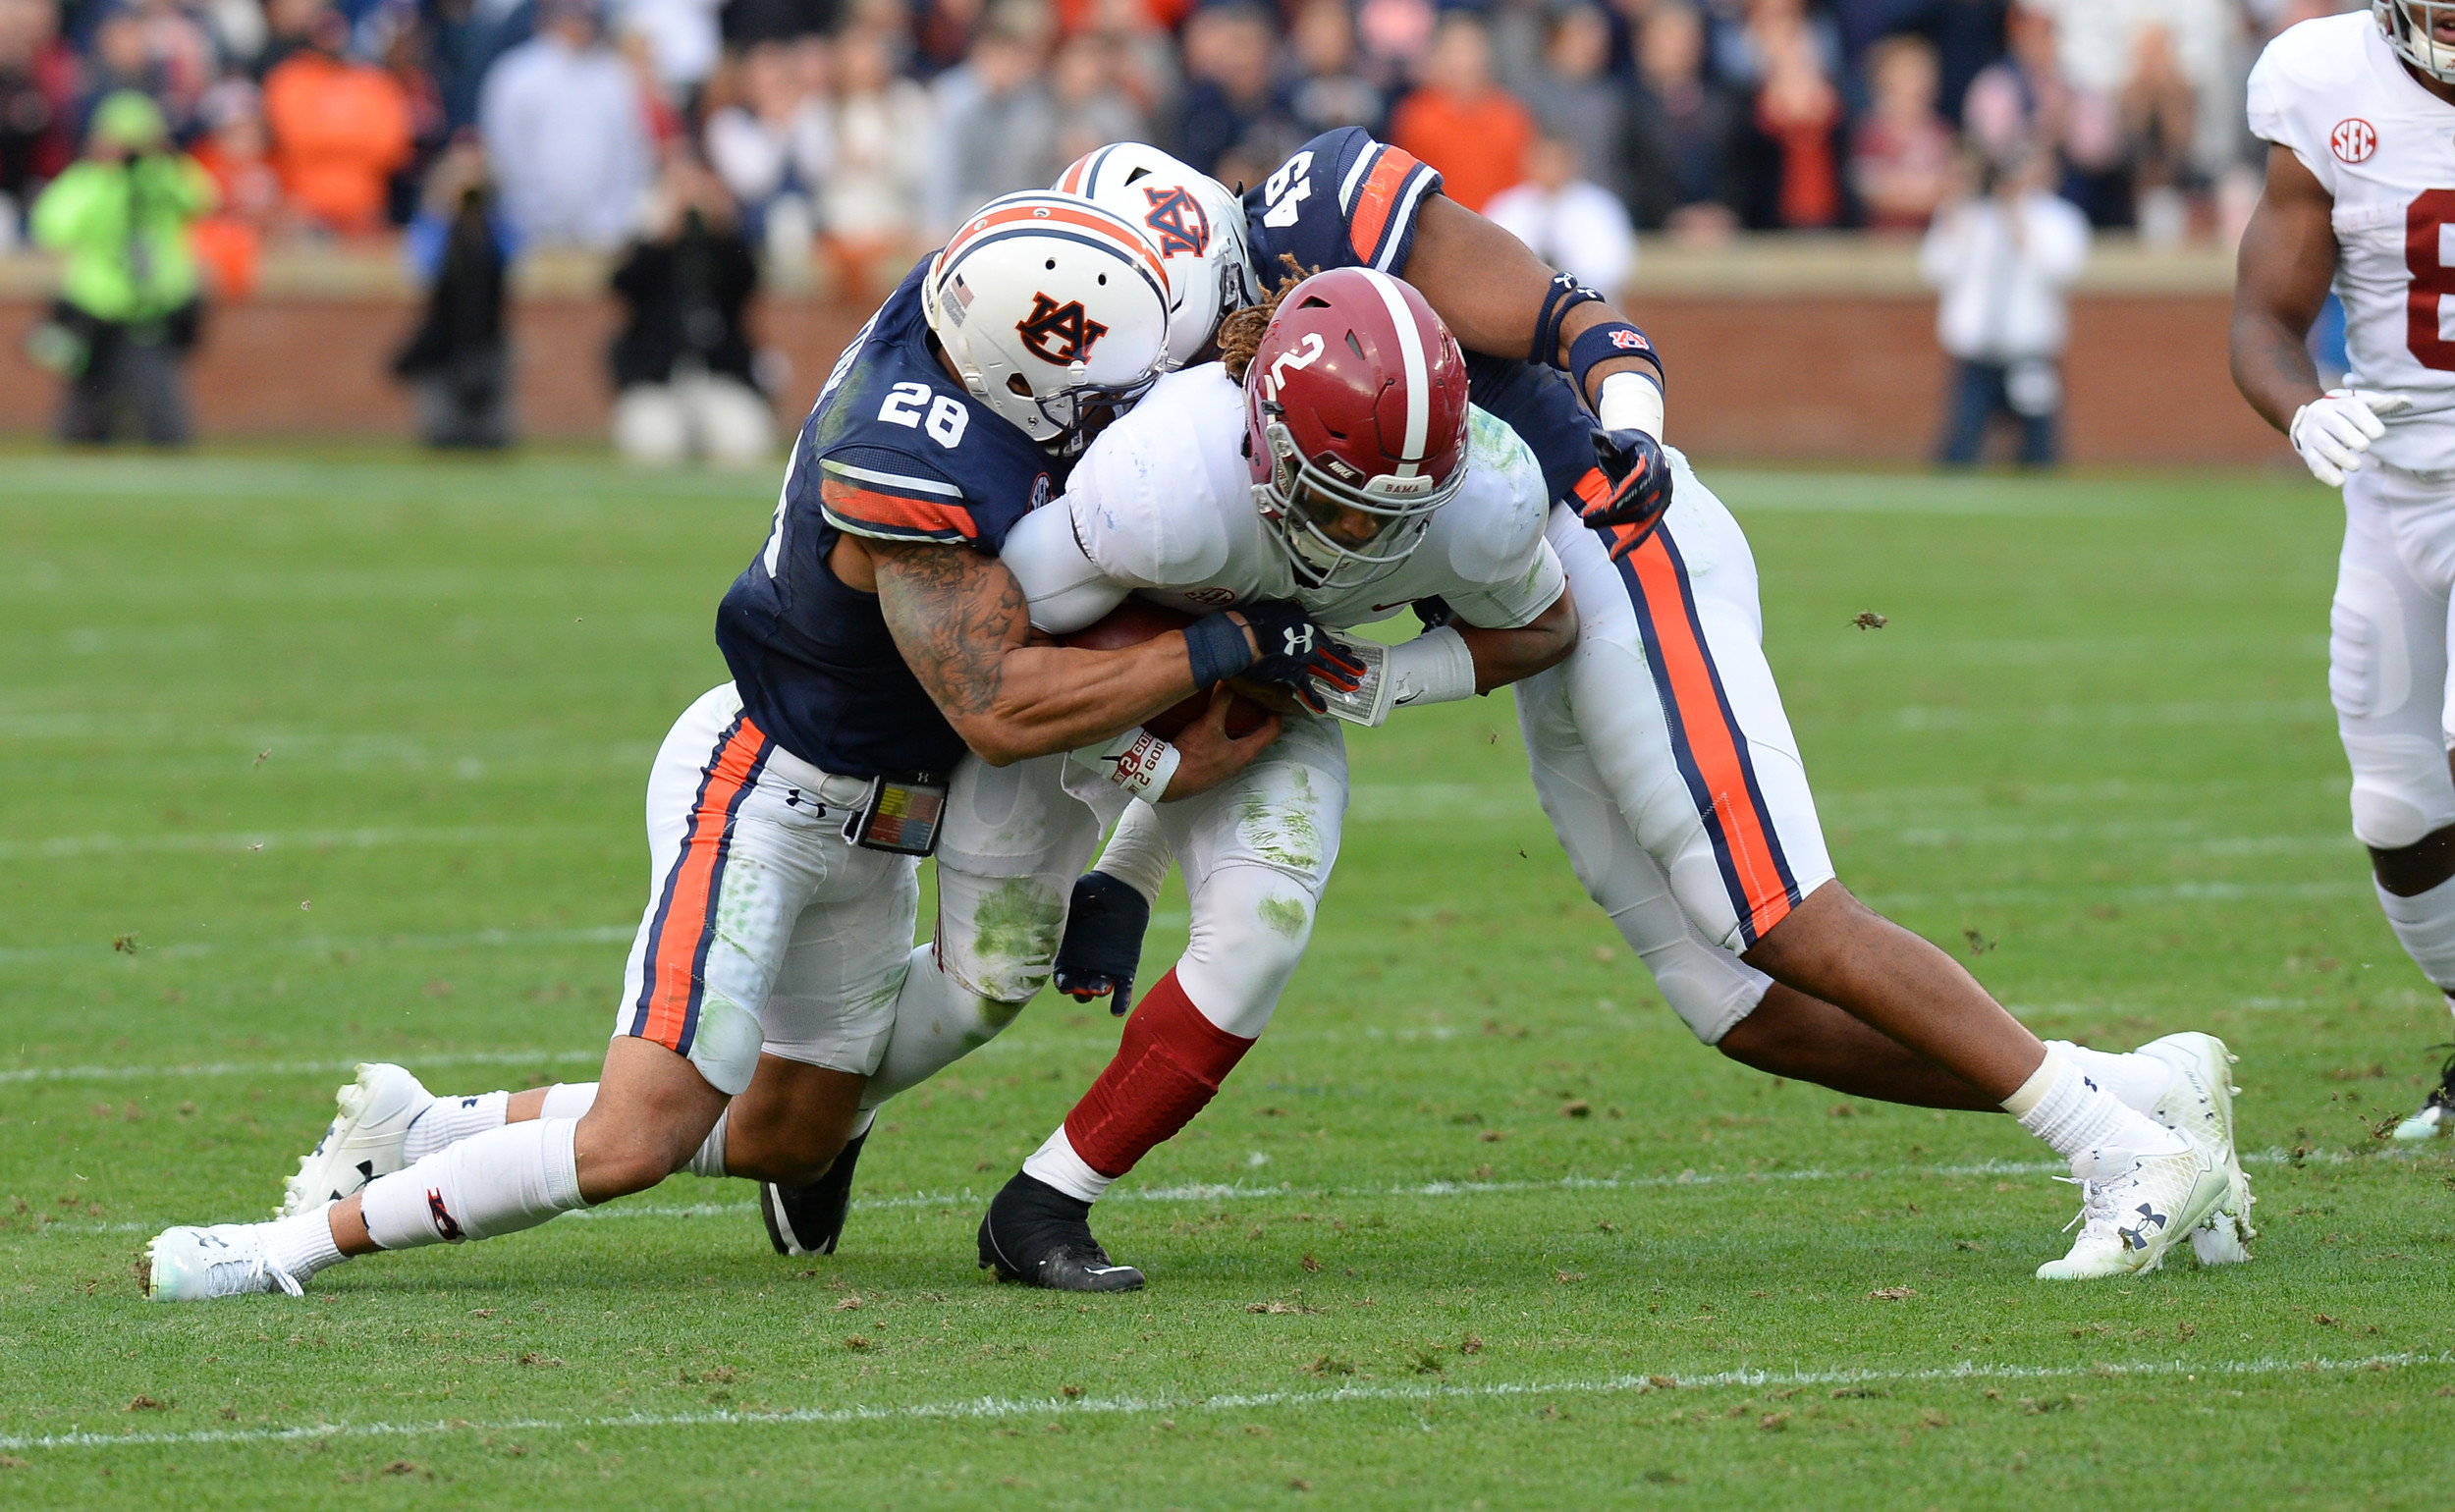 Alabama Crimson Tide quarterback Jalen Hurts (2) is tackled by Auburn Tigers defensive back Tray Matthews (28) and defensive back Jacob Rogers (45)during the first half of Saturday's game, at Jordan-Hare Stadium.